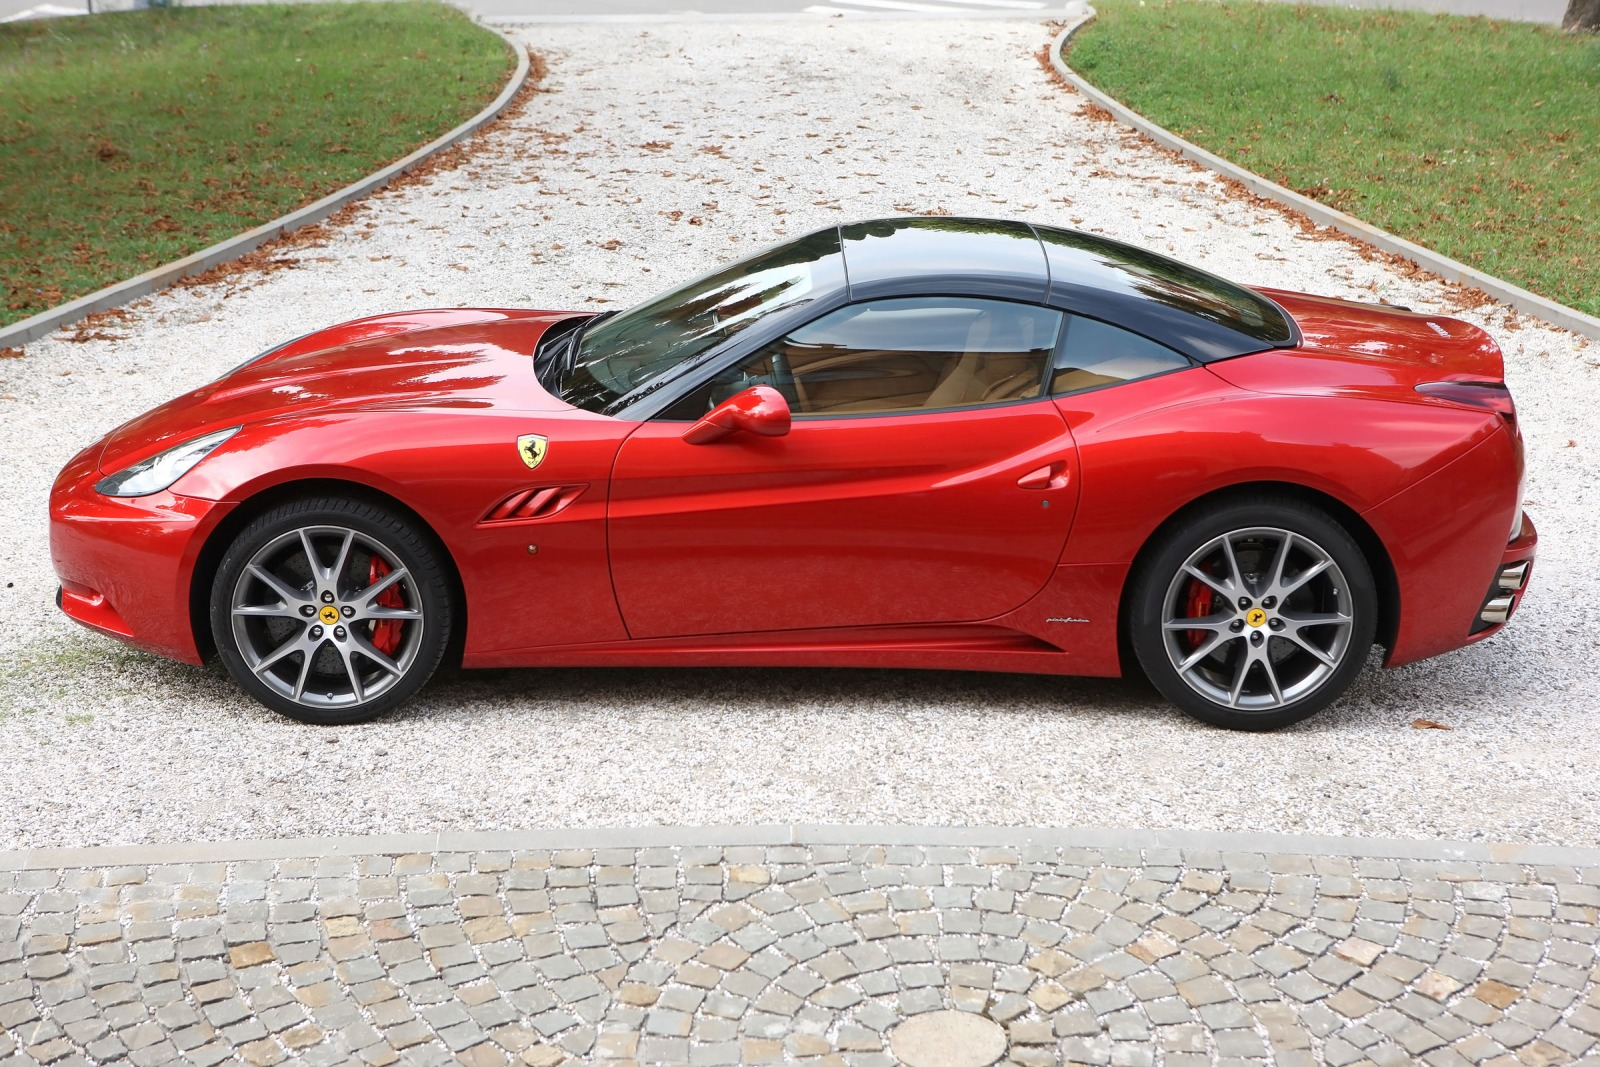 2012 Ferrari California C interior #4